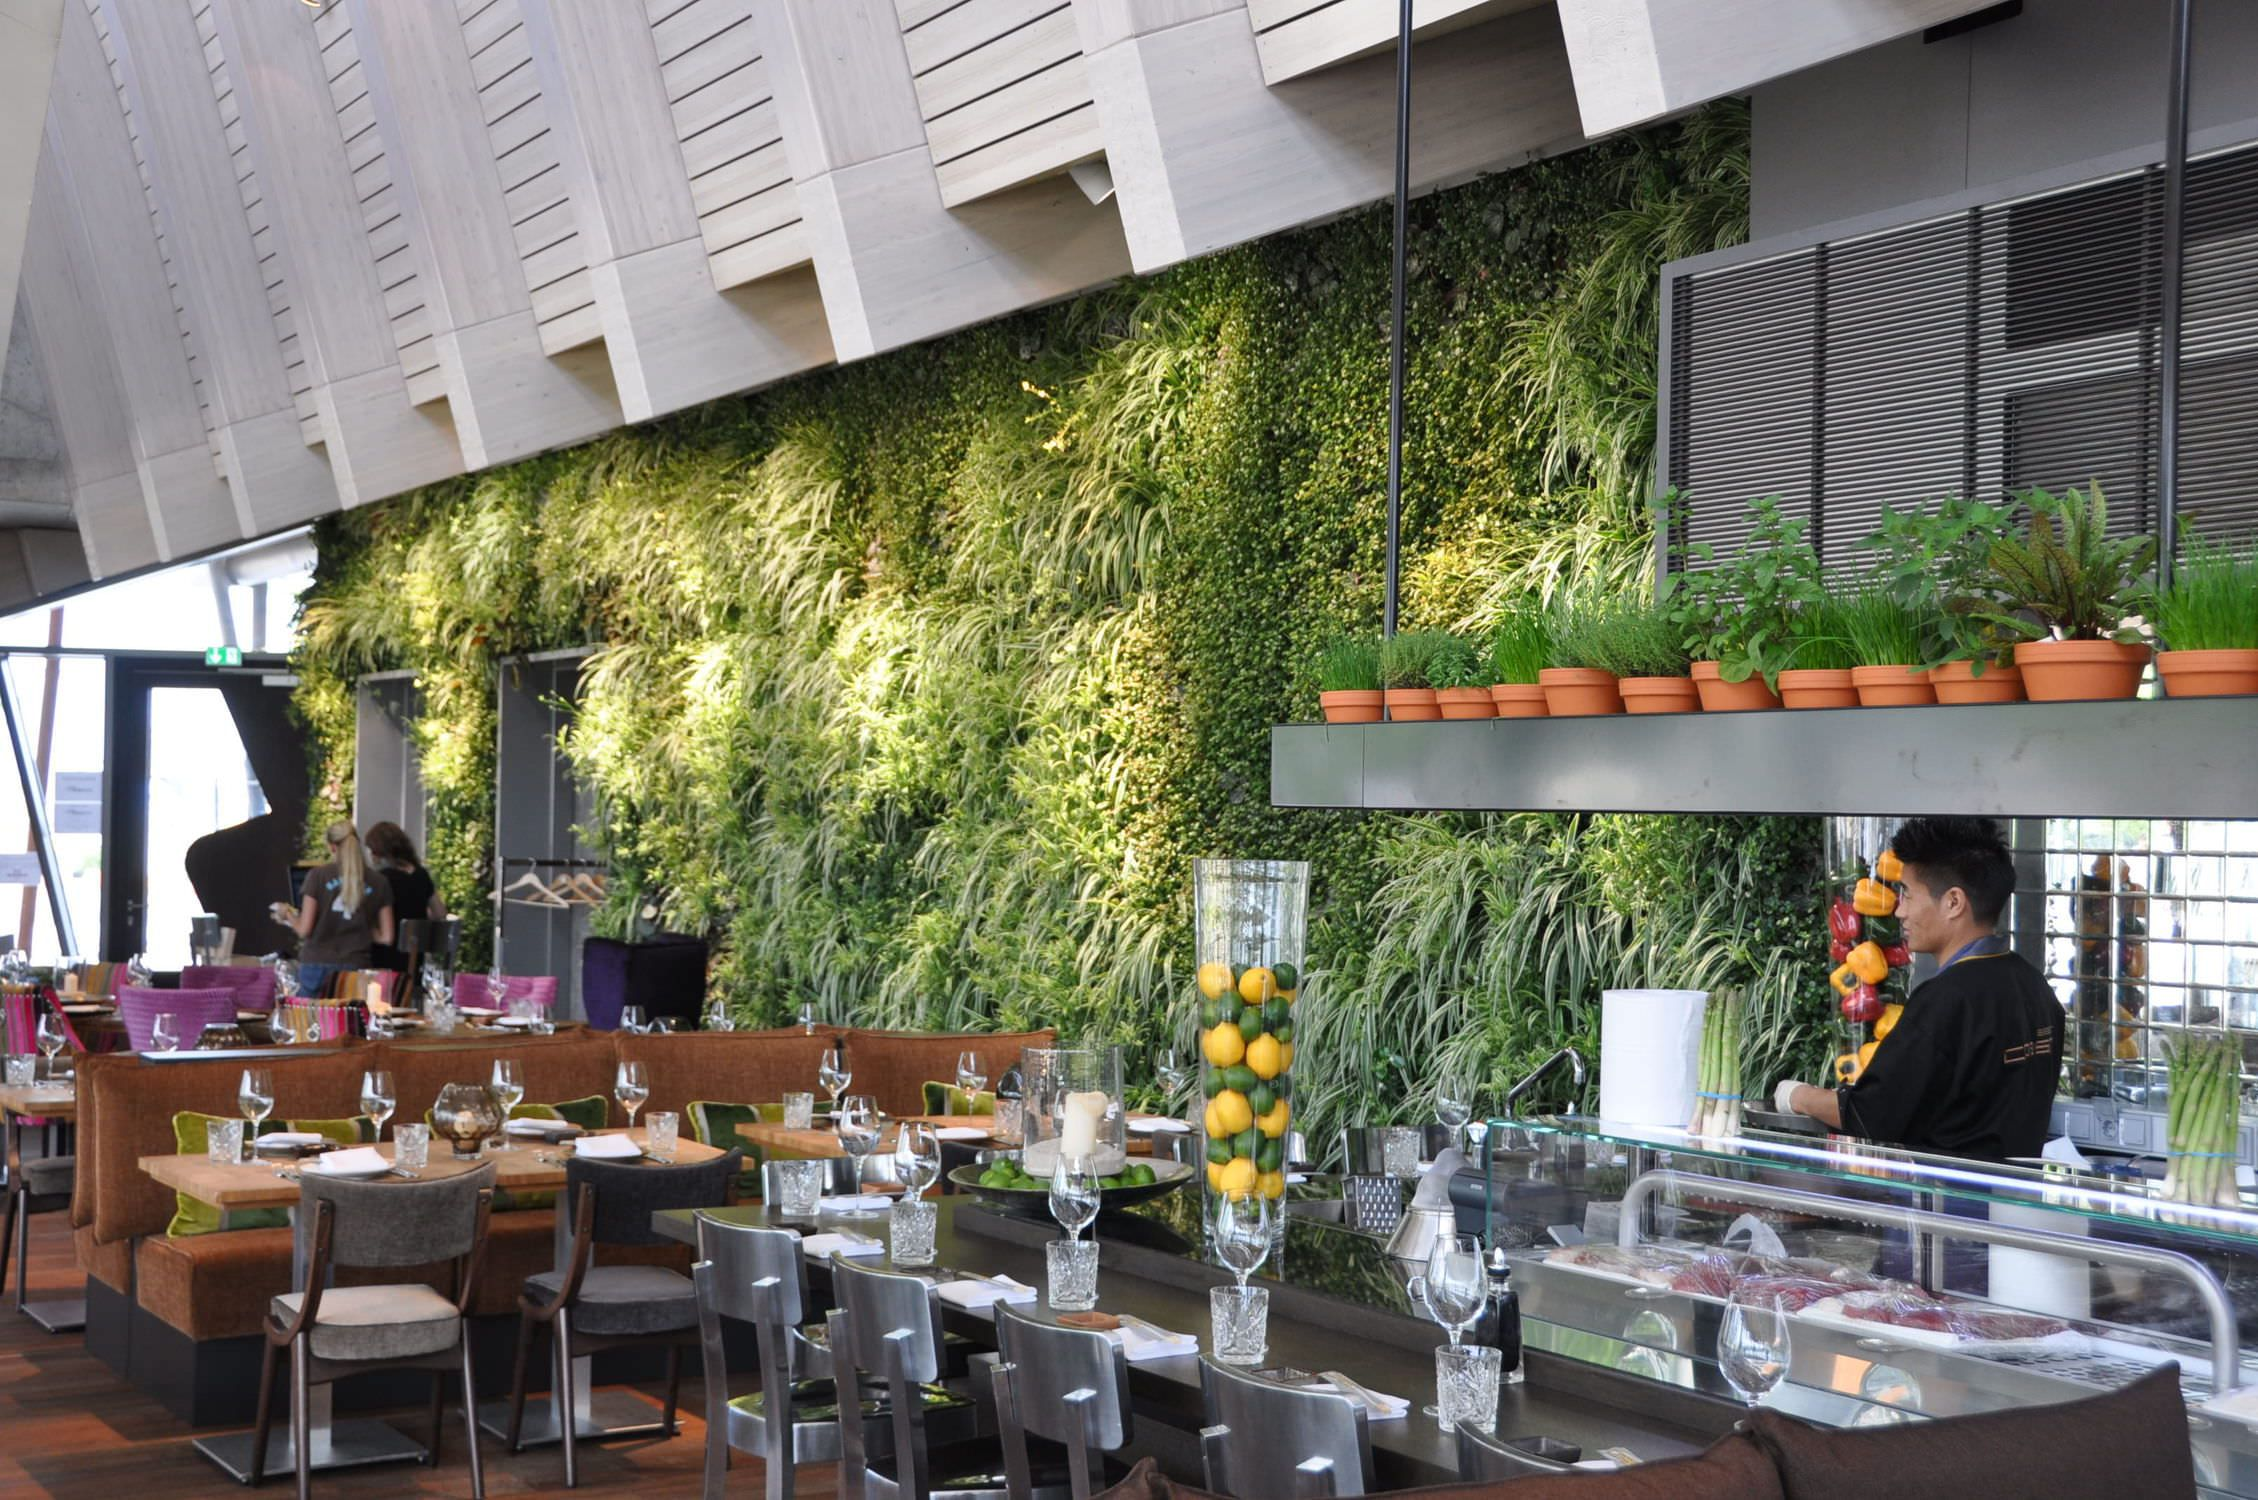 Indoor green wall vertiss plus bar architecture design for Restaurant design software